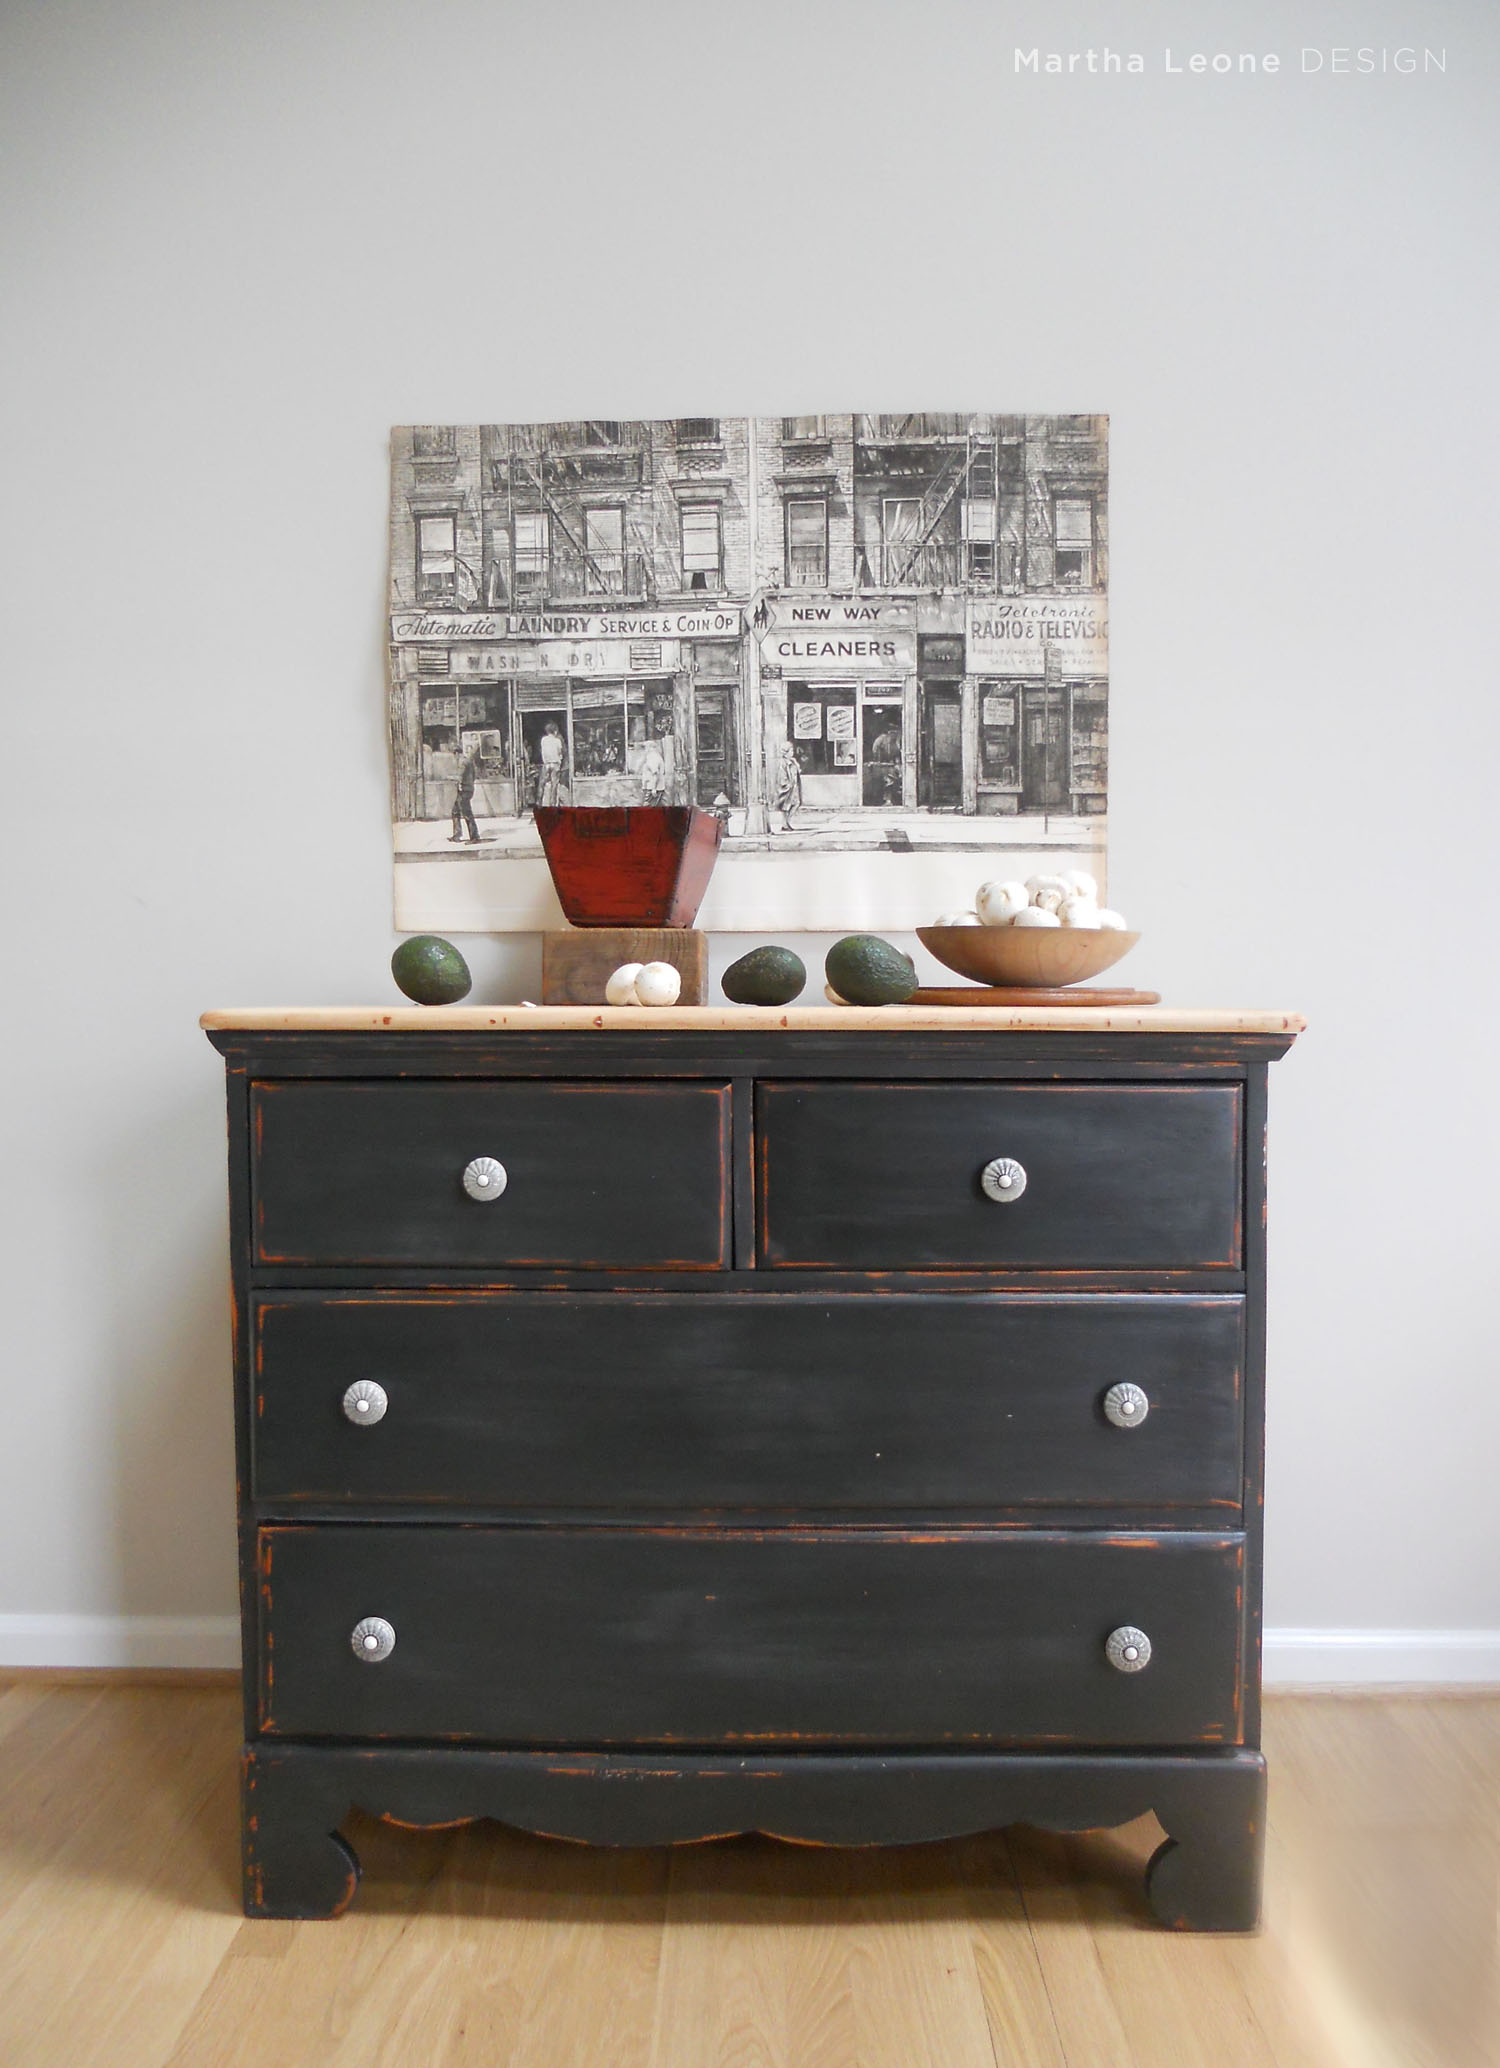 Black Chest of Drawers9 Martha Leone Design